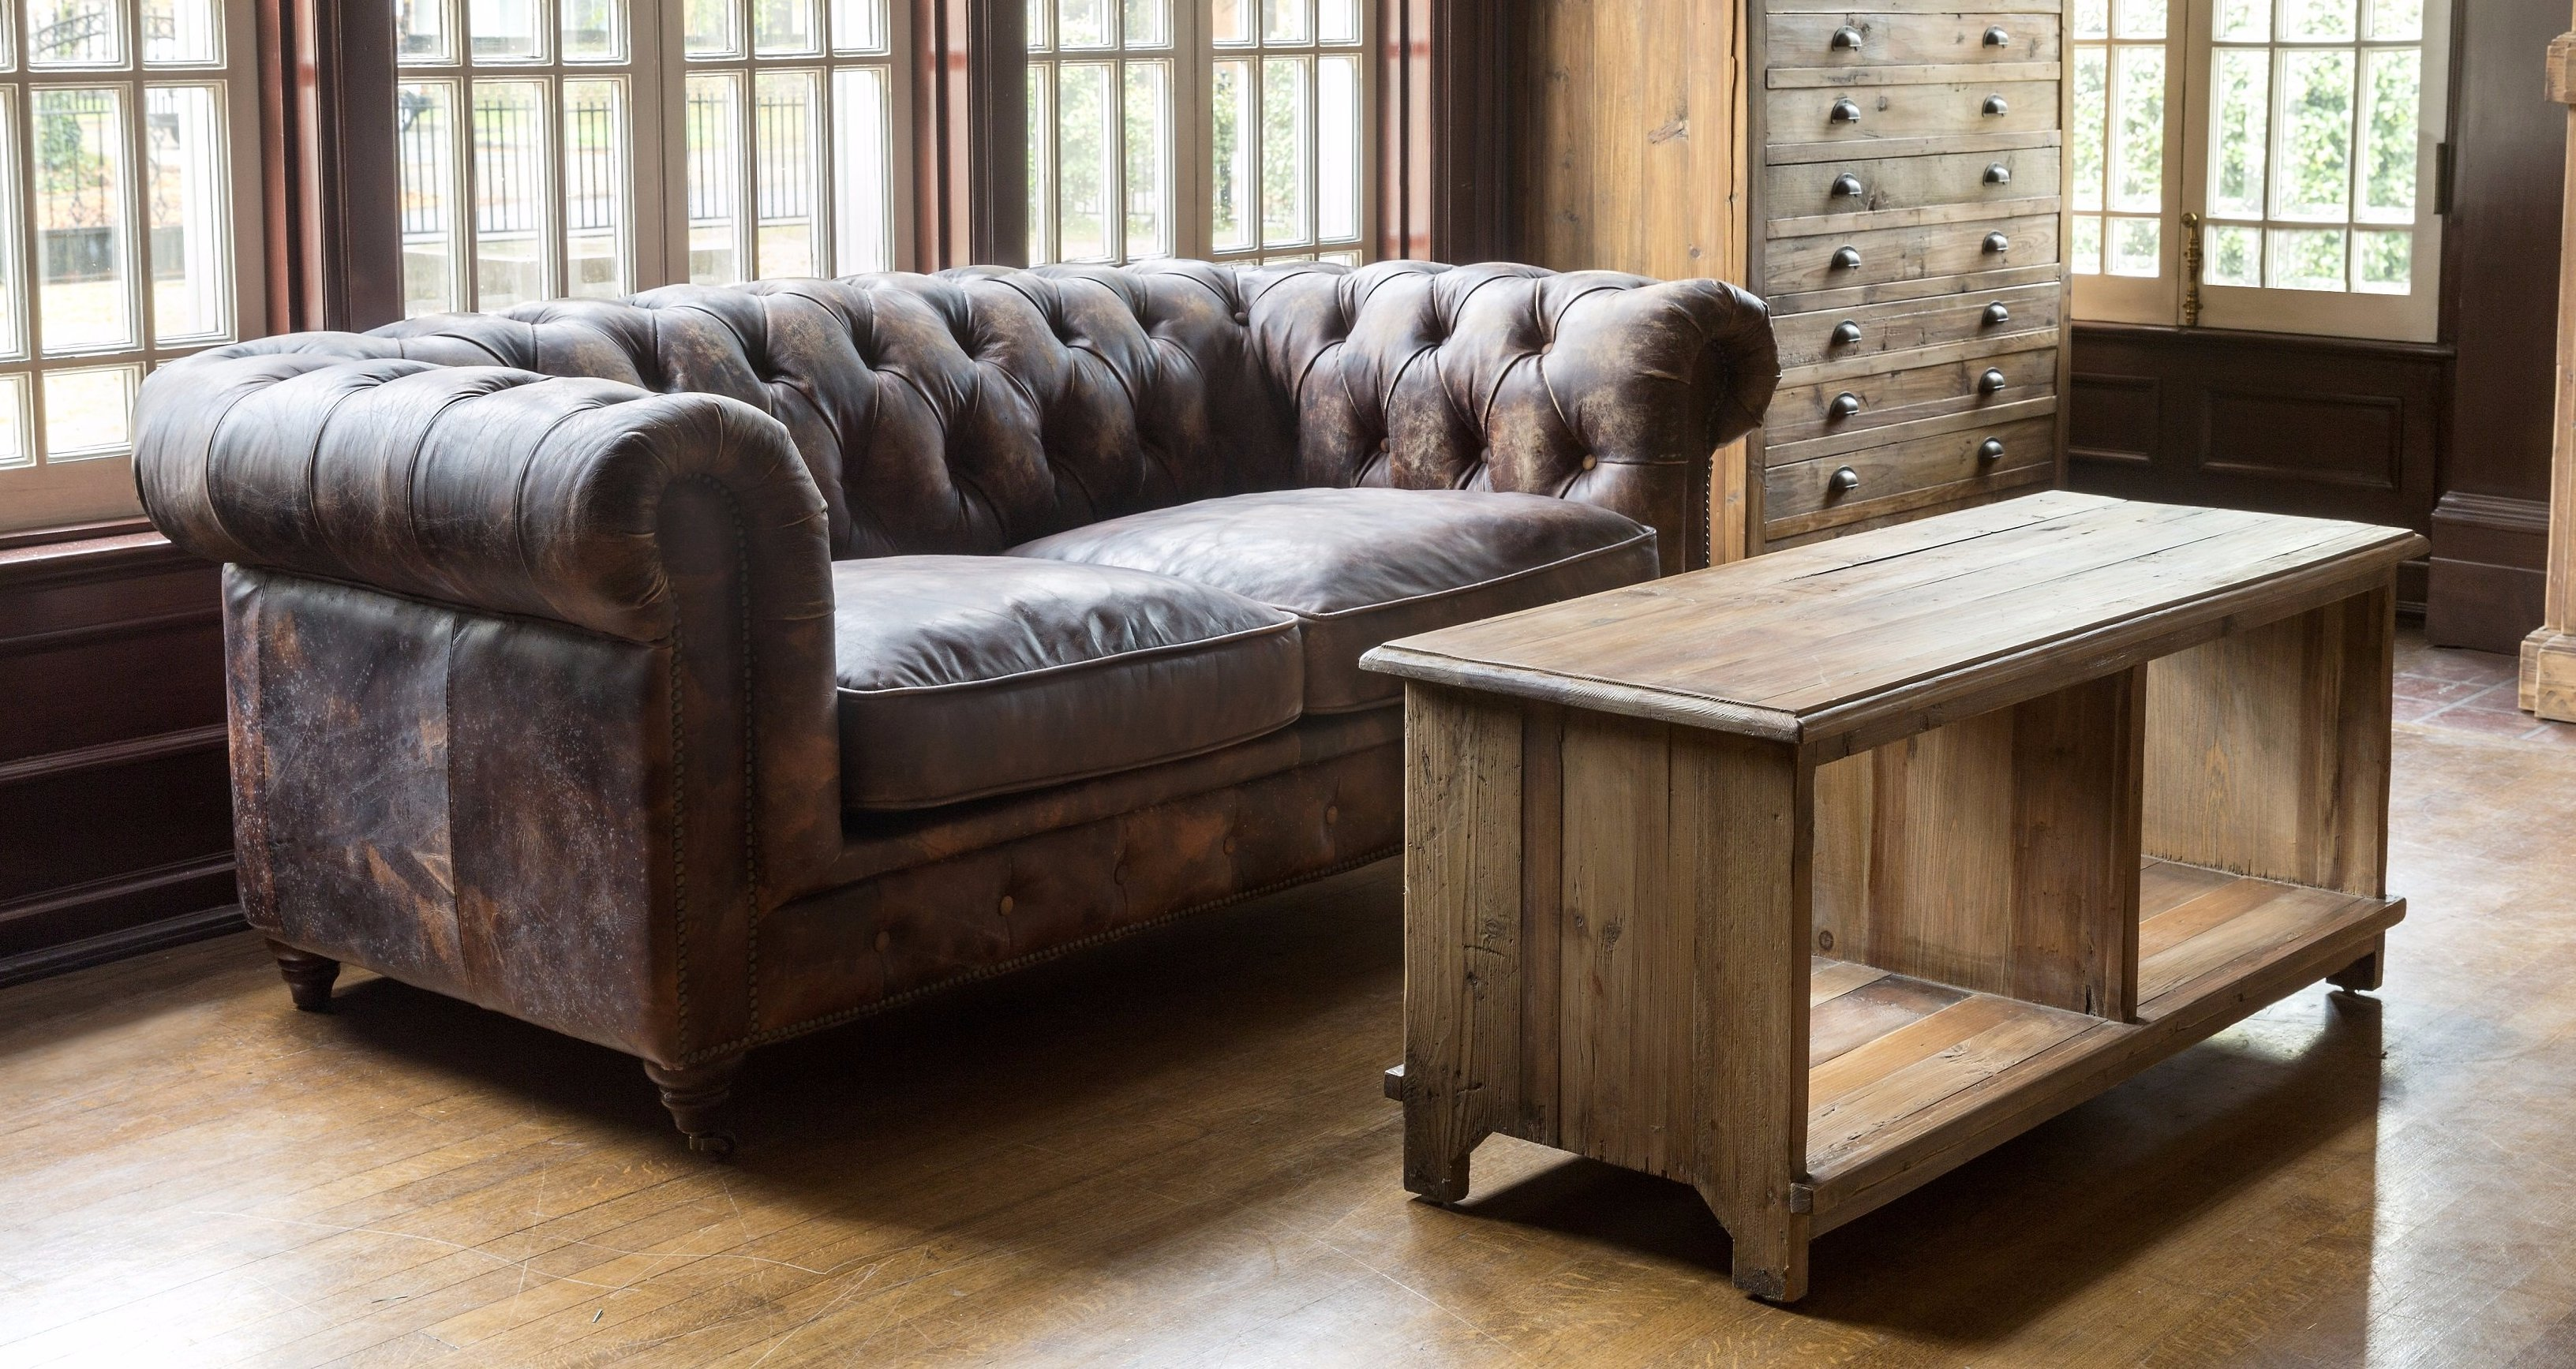 Cool Aged Leather Cattlemans Club Sofa Products Sofa Sofa Gmtry Best Dining Table And Chair Ideas Images Gmtryco